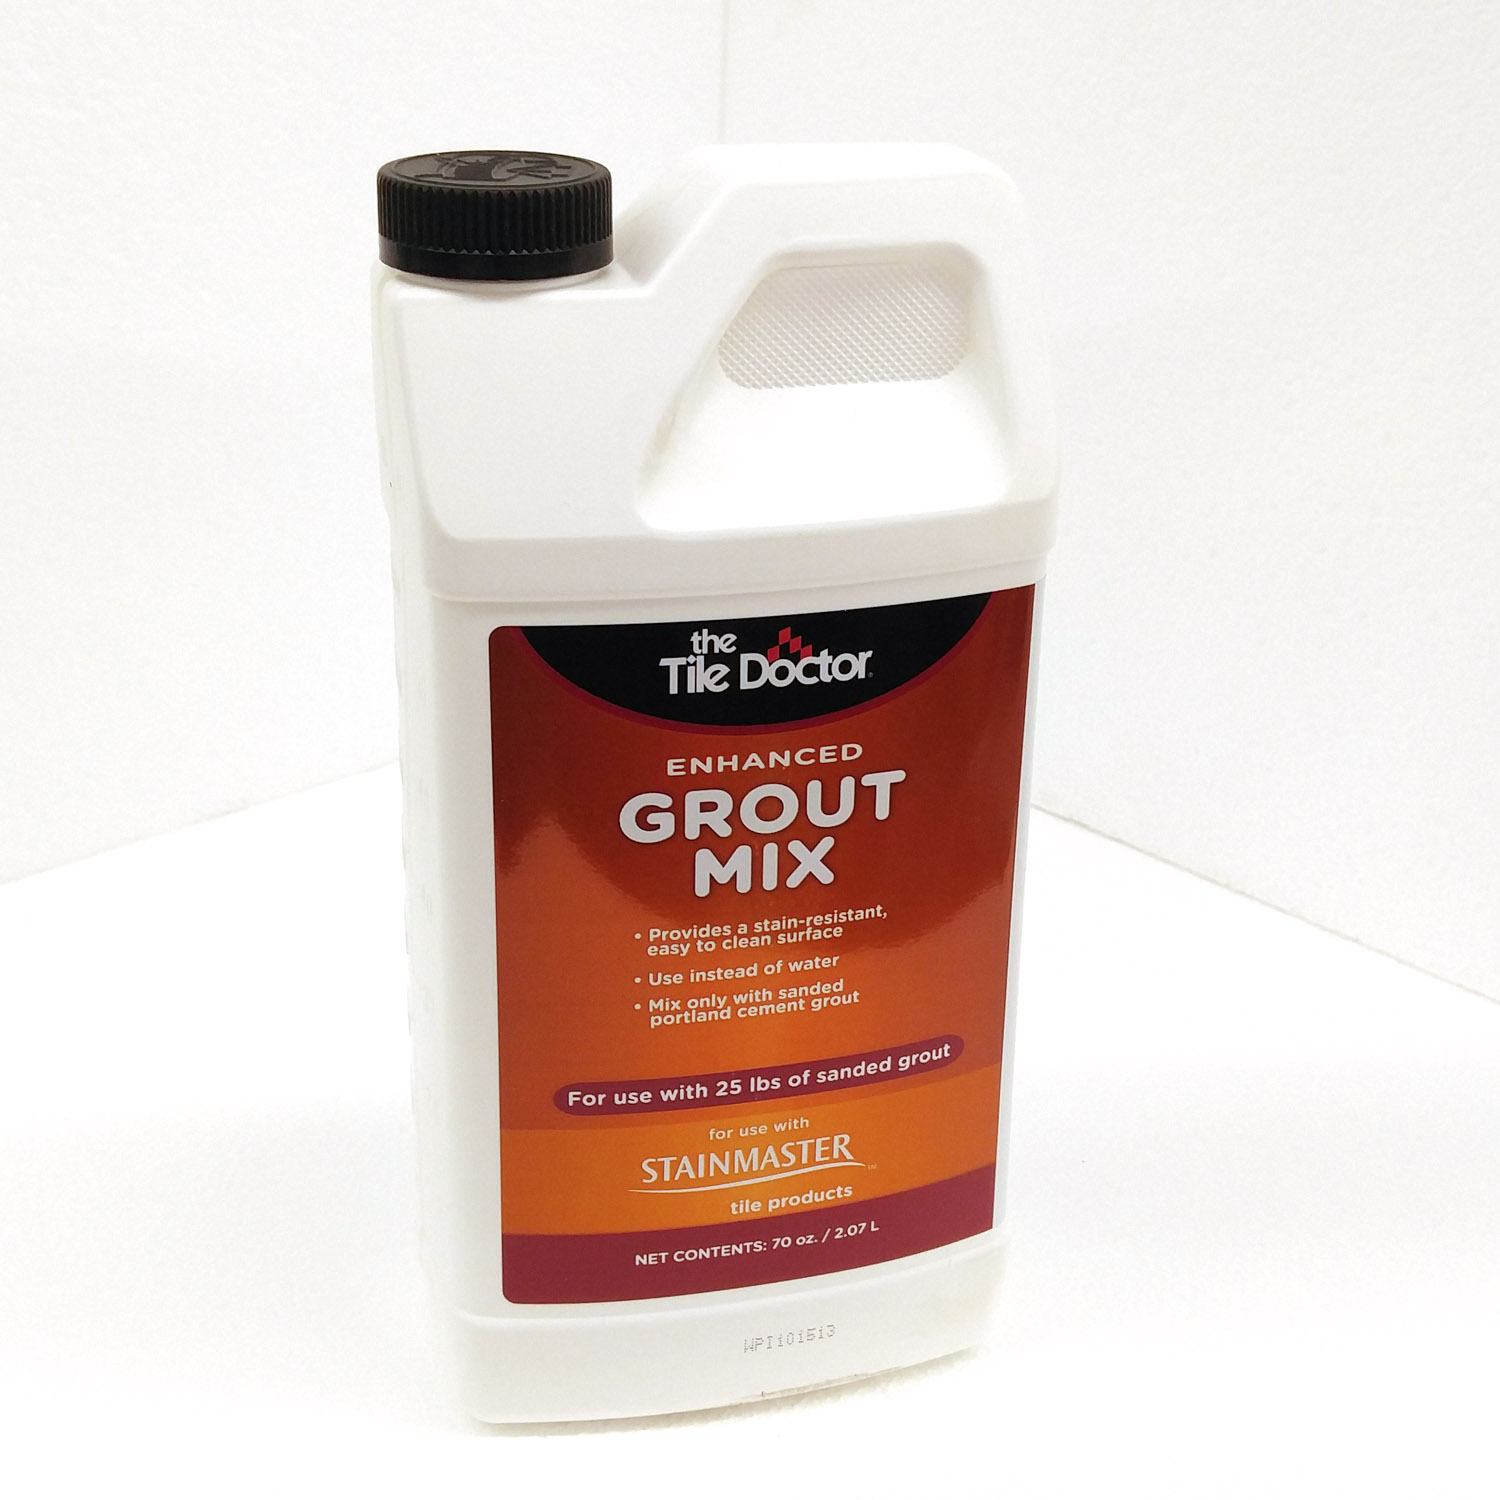 Stainmaster Grout Admix 2 with Shield Technology for Sanded Grout by The Tile Doctor